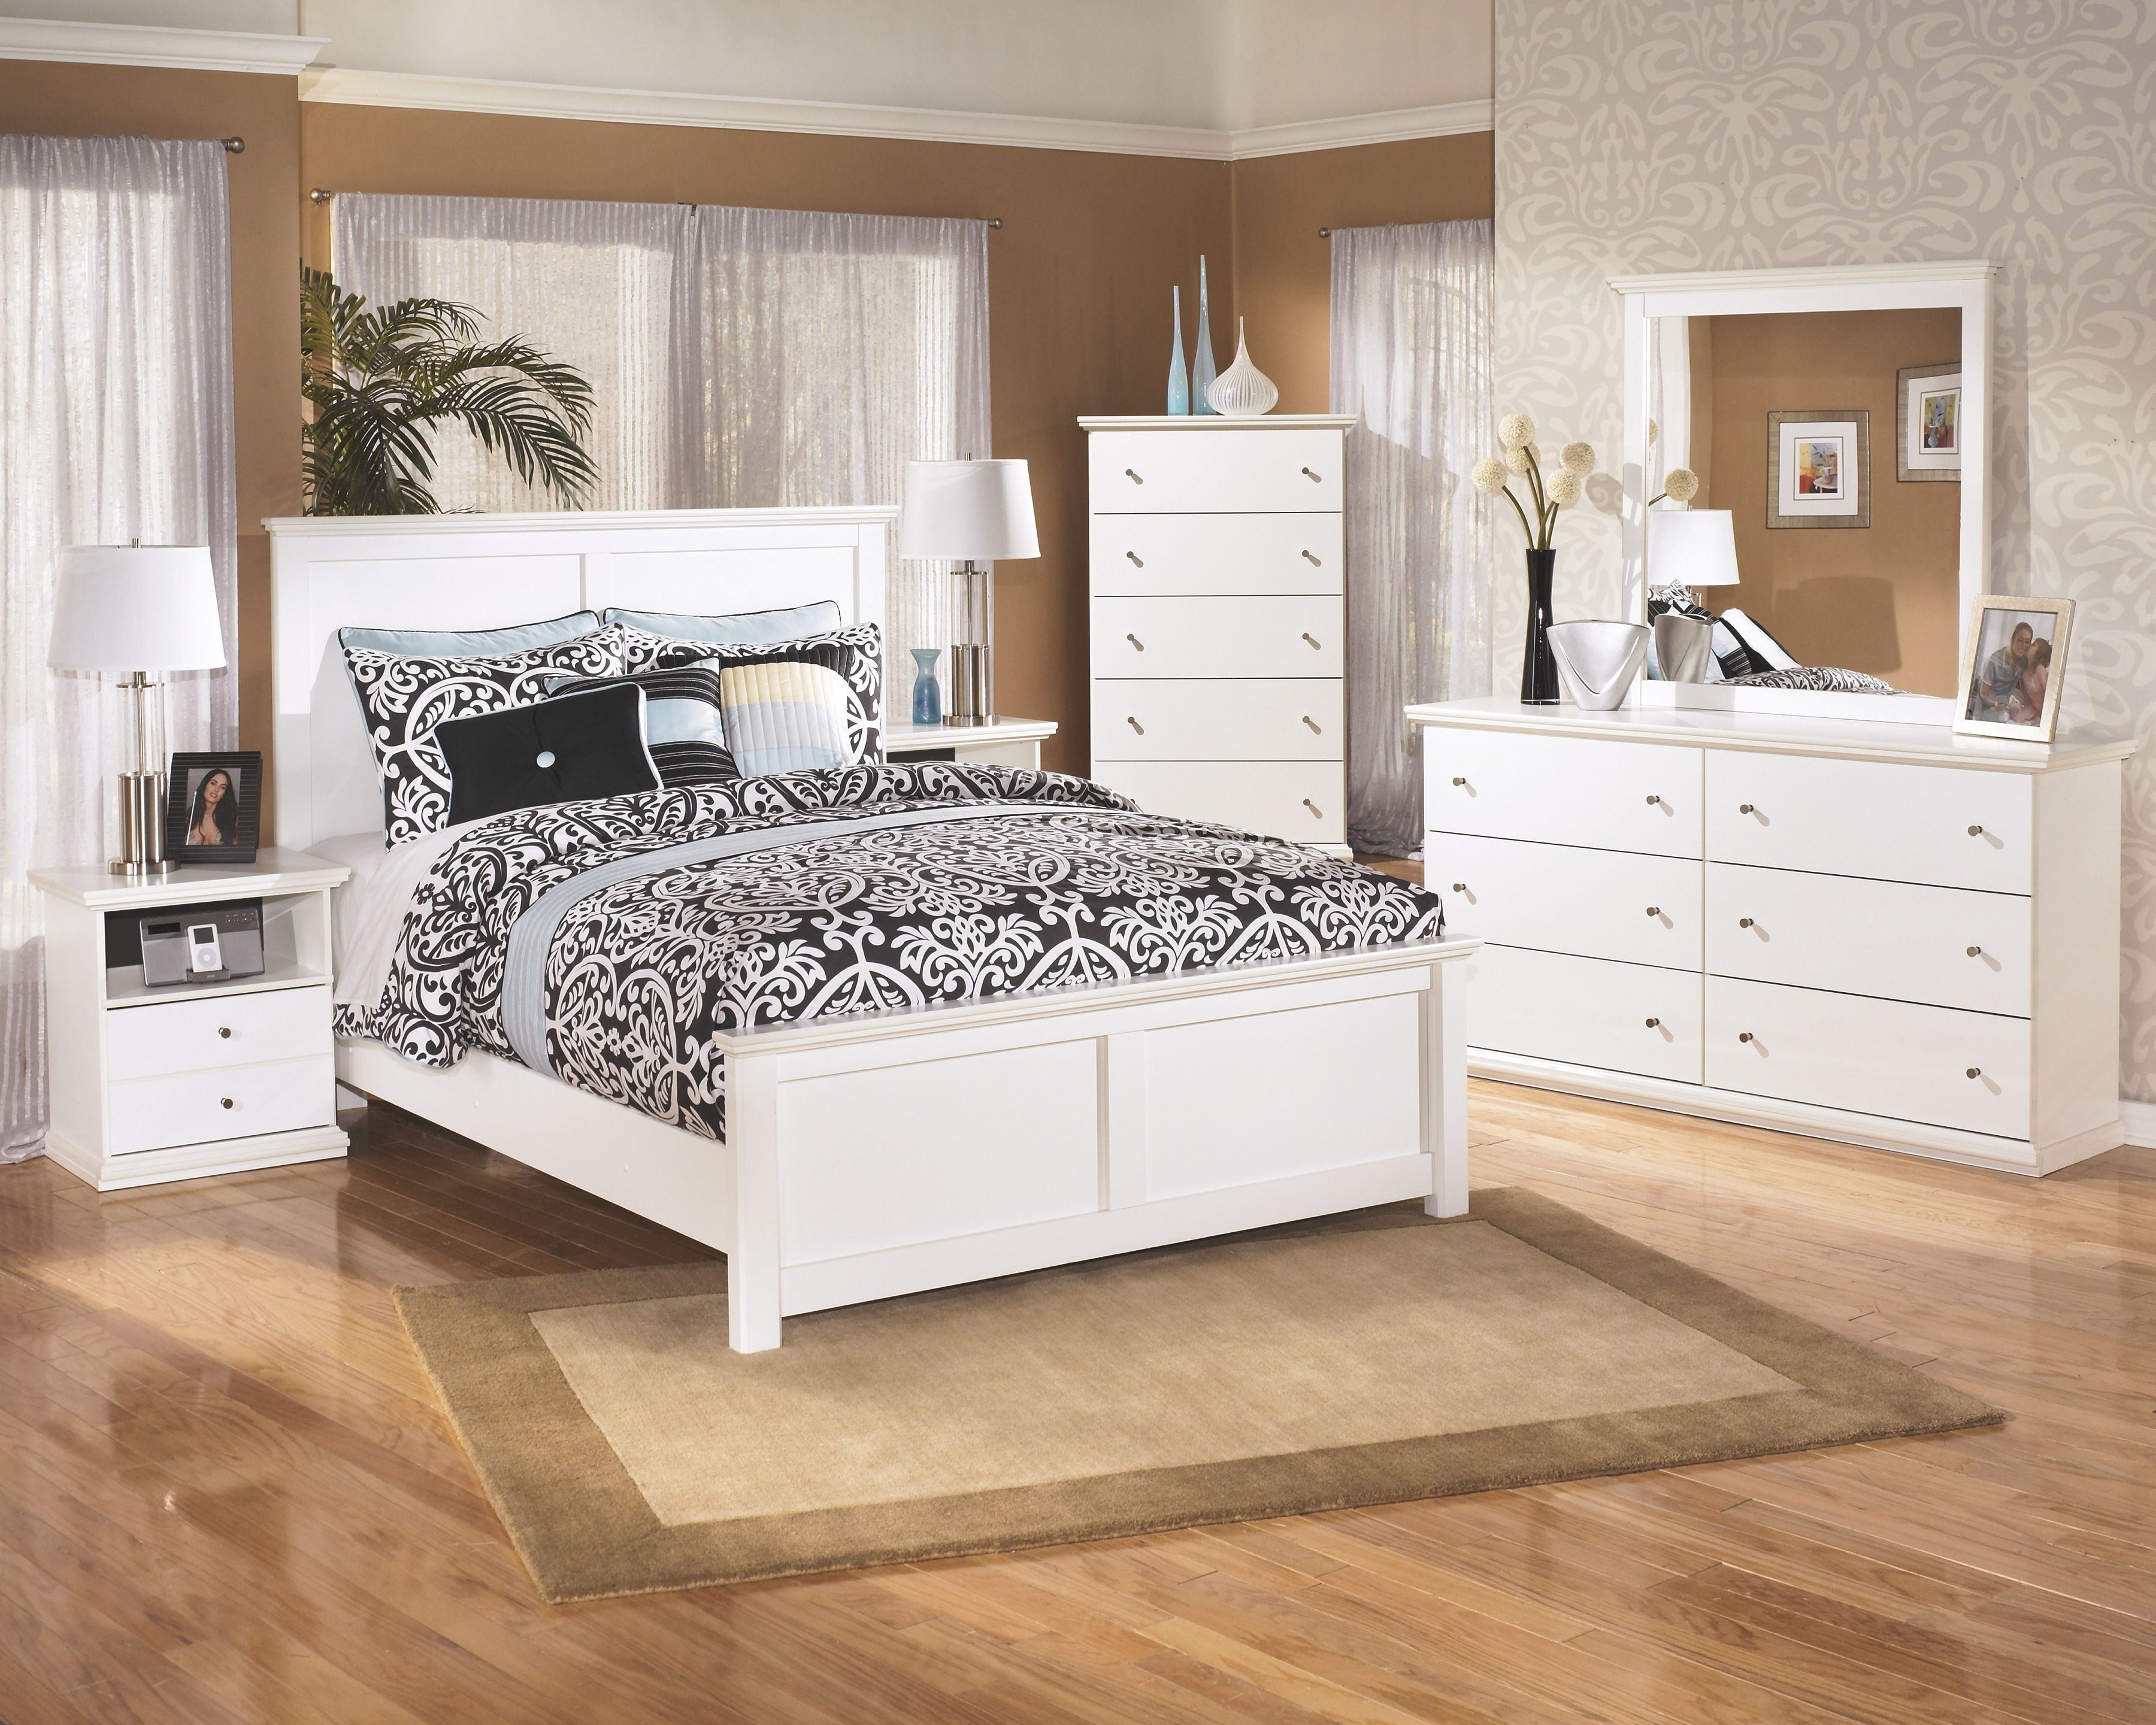 Signature Design By Ashley Bedroom Dresser B139 31   Winner Furniture    Louisville, Owensboro And Radcliff, KY